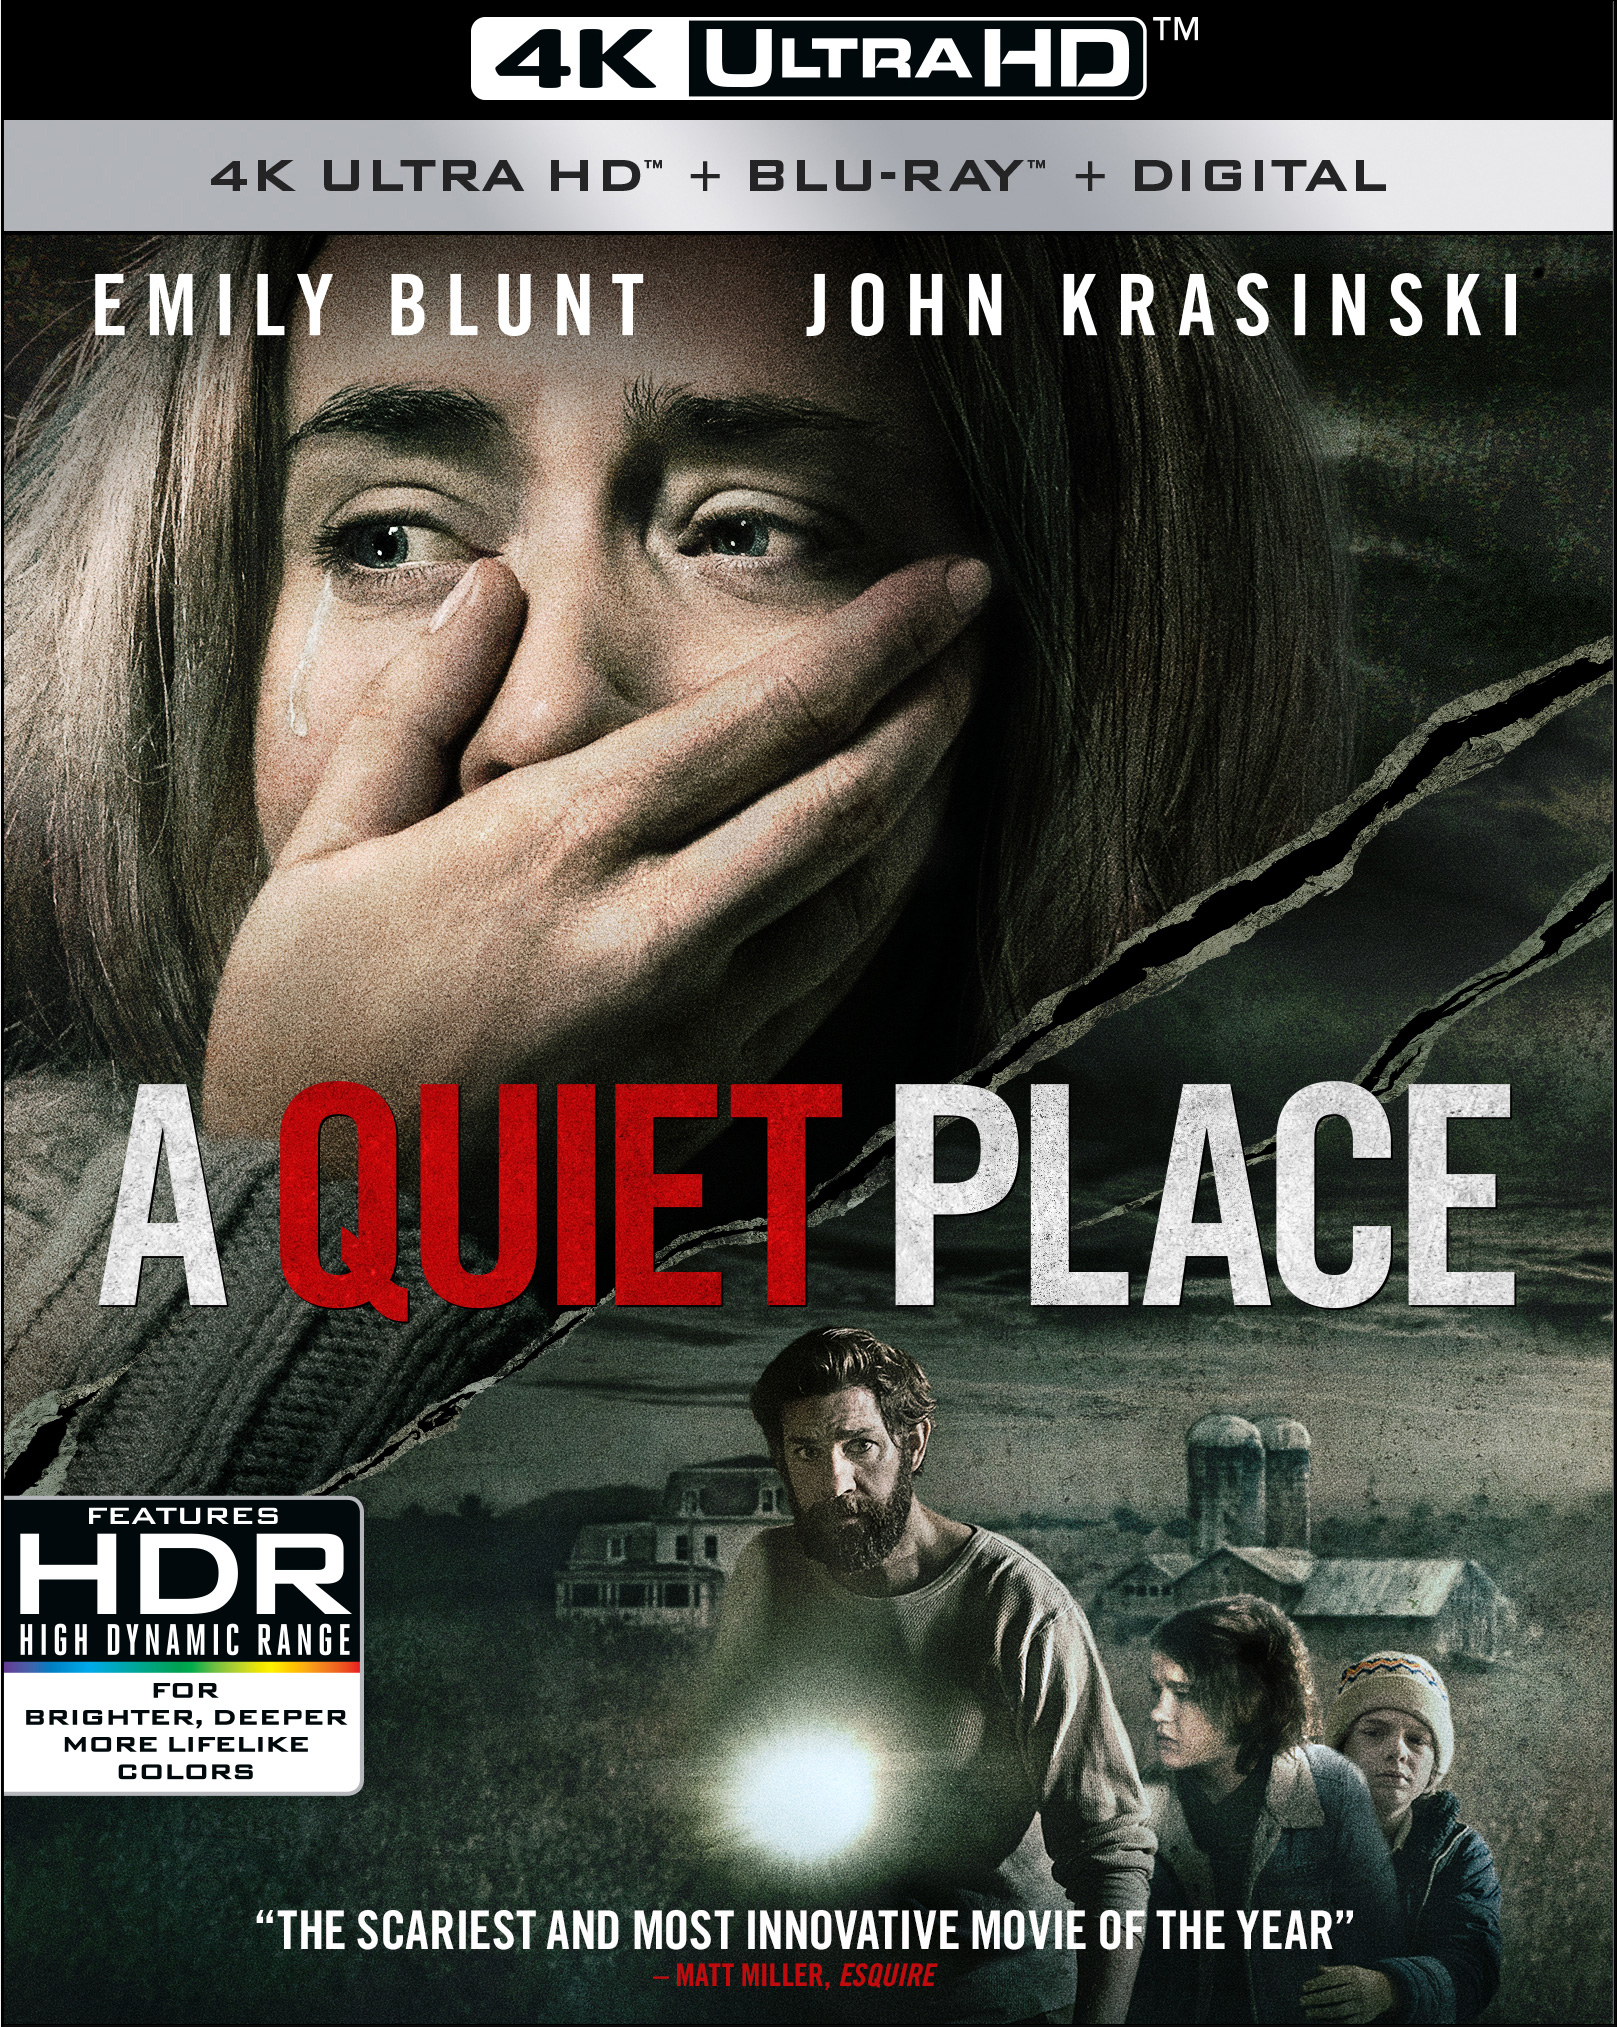 A Quiet Place (4K Ultra HD + Blu-ray + Digital) by